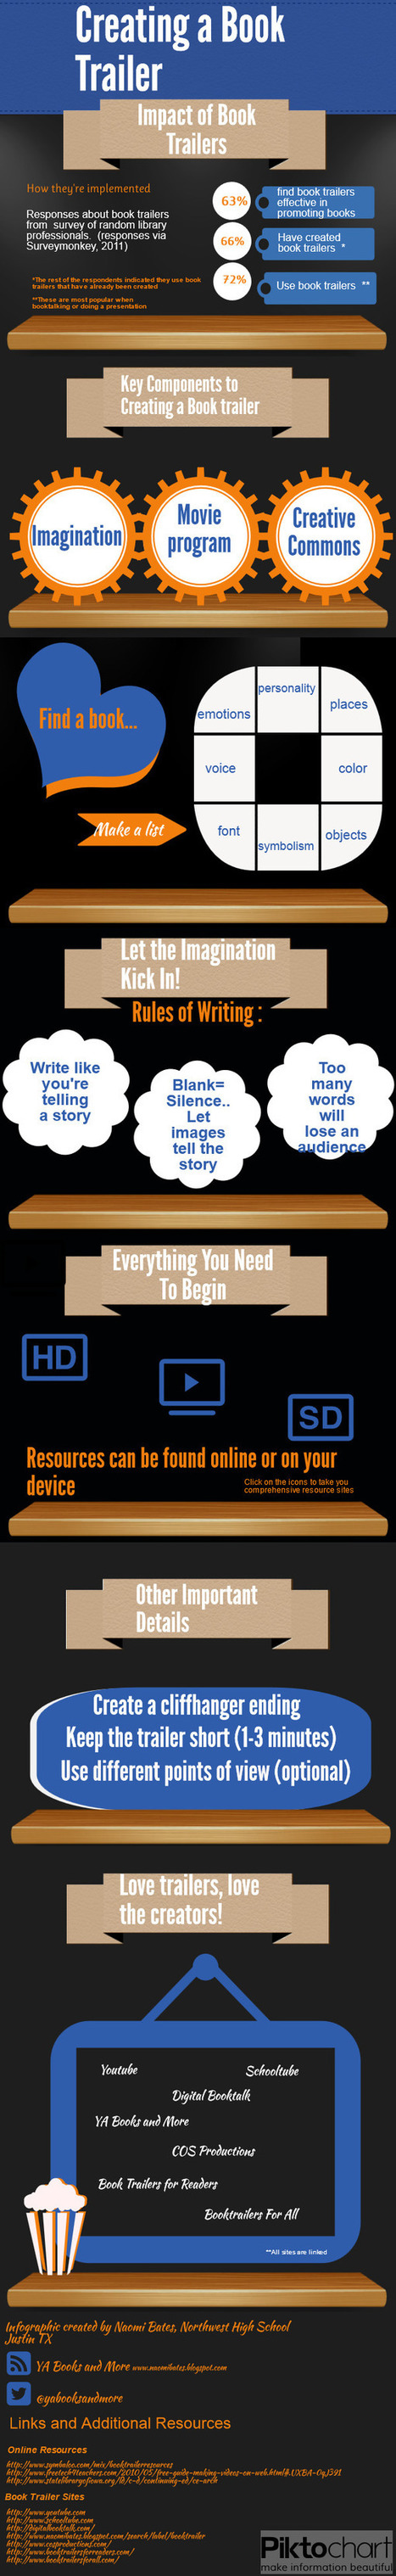 Share Infographic | DSC Library | Scoop.it